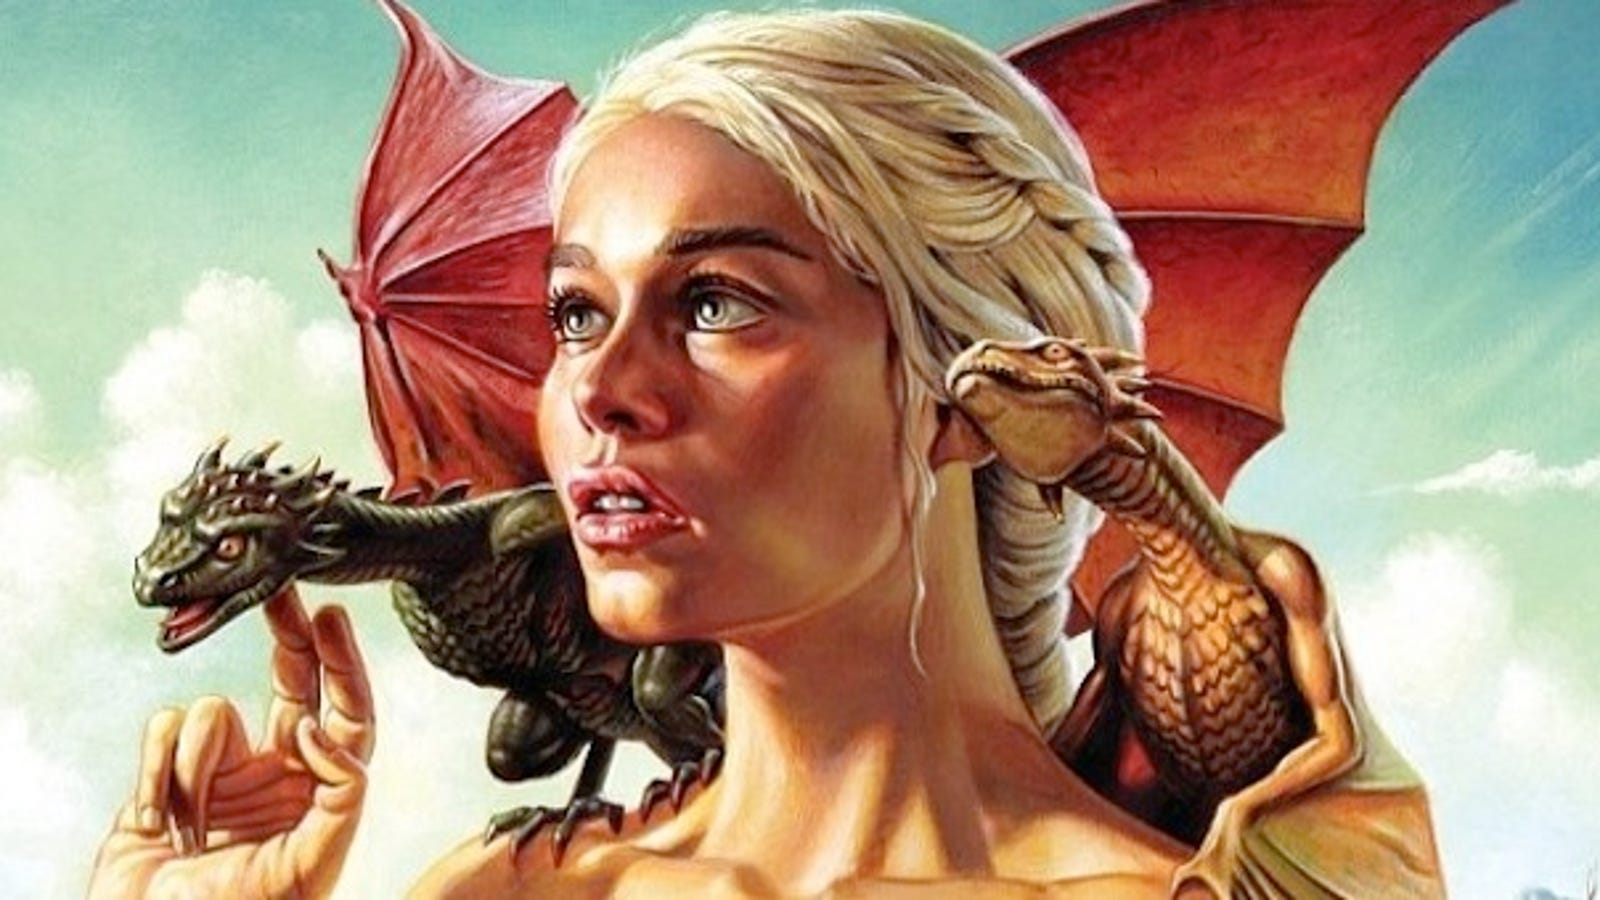 Check Out The Astonishing Artwork From Mondos Game Of Thrones